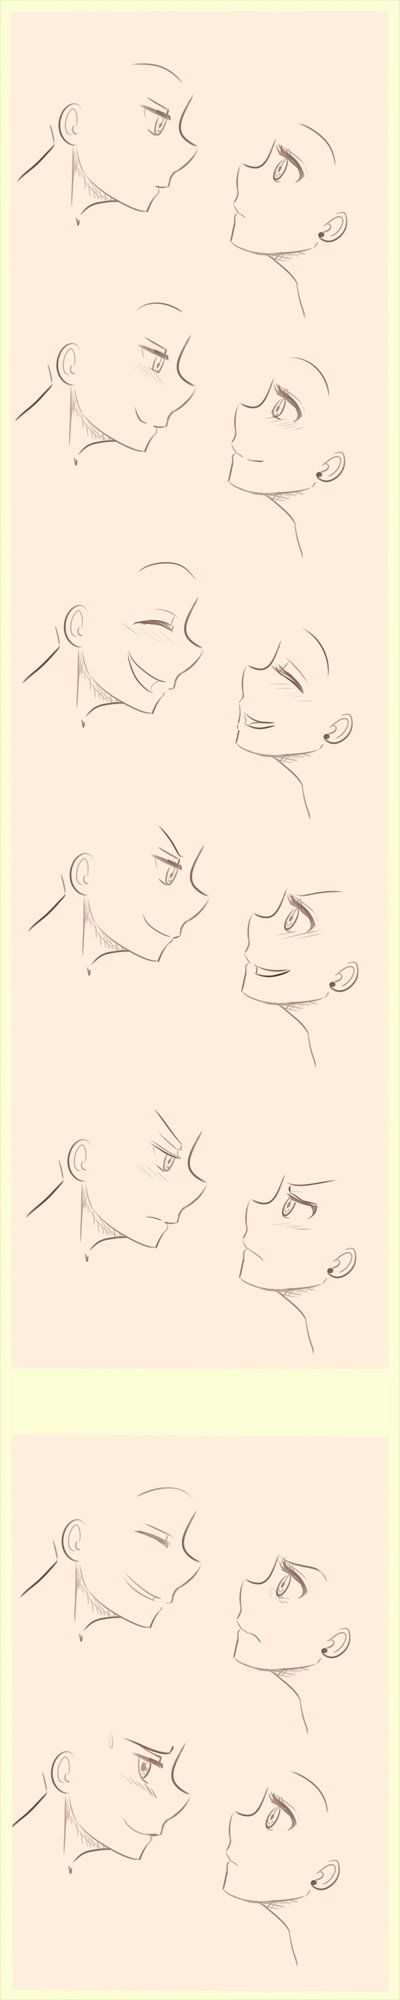 Anime Manga Side Profile Expressions Reference By Littlesomethings On Deviantart Anime Drawings Drawing Sketches Drawing Tutorial